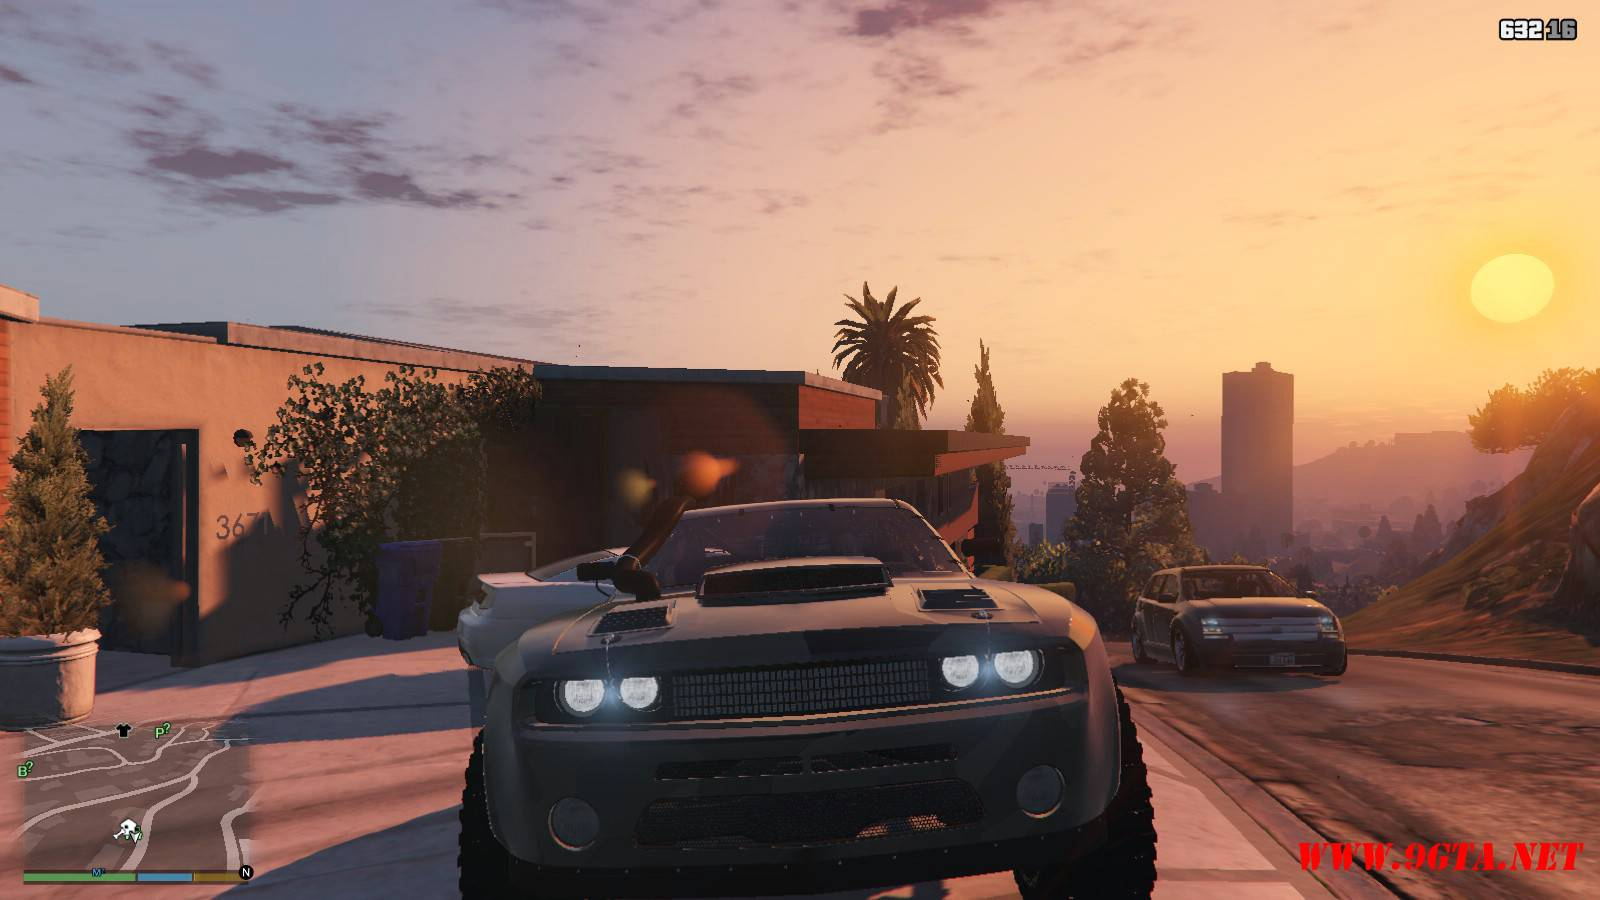 Dodge Charger RAID v1.0 Mod For GTA5 (9)